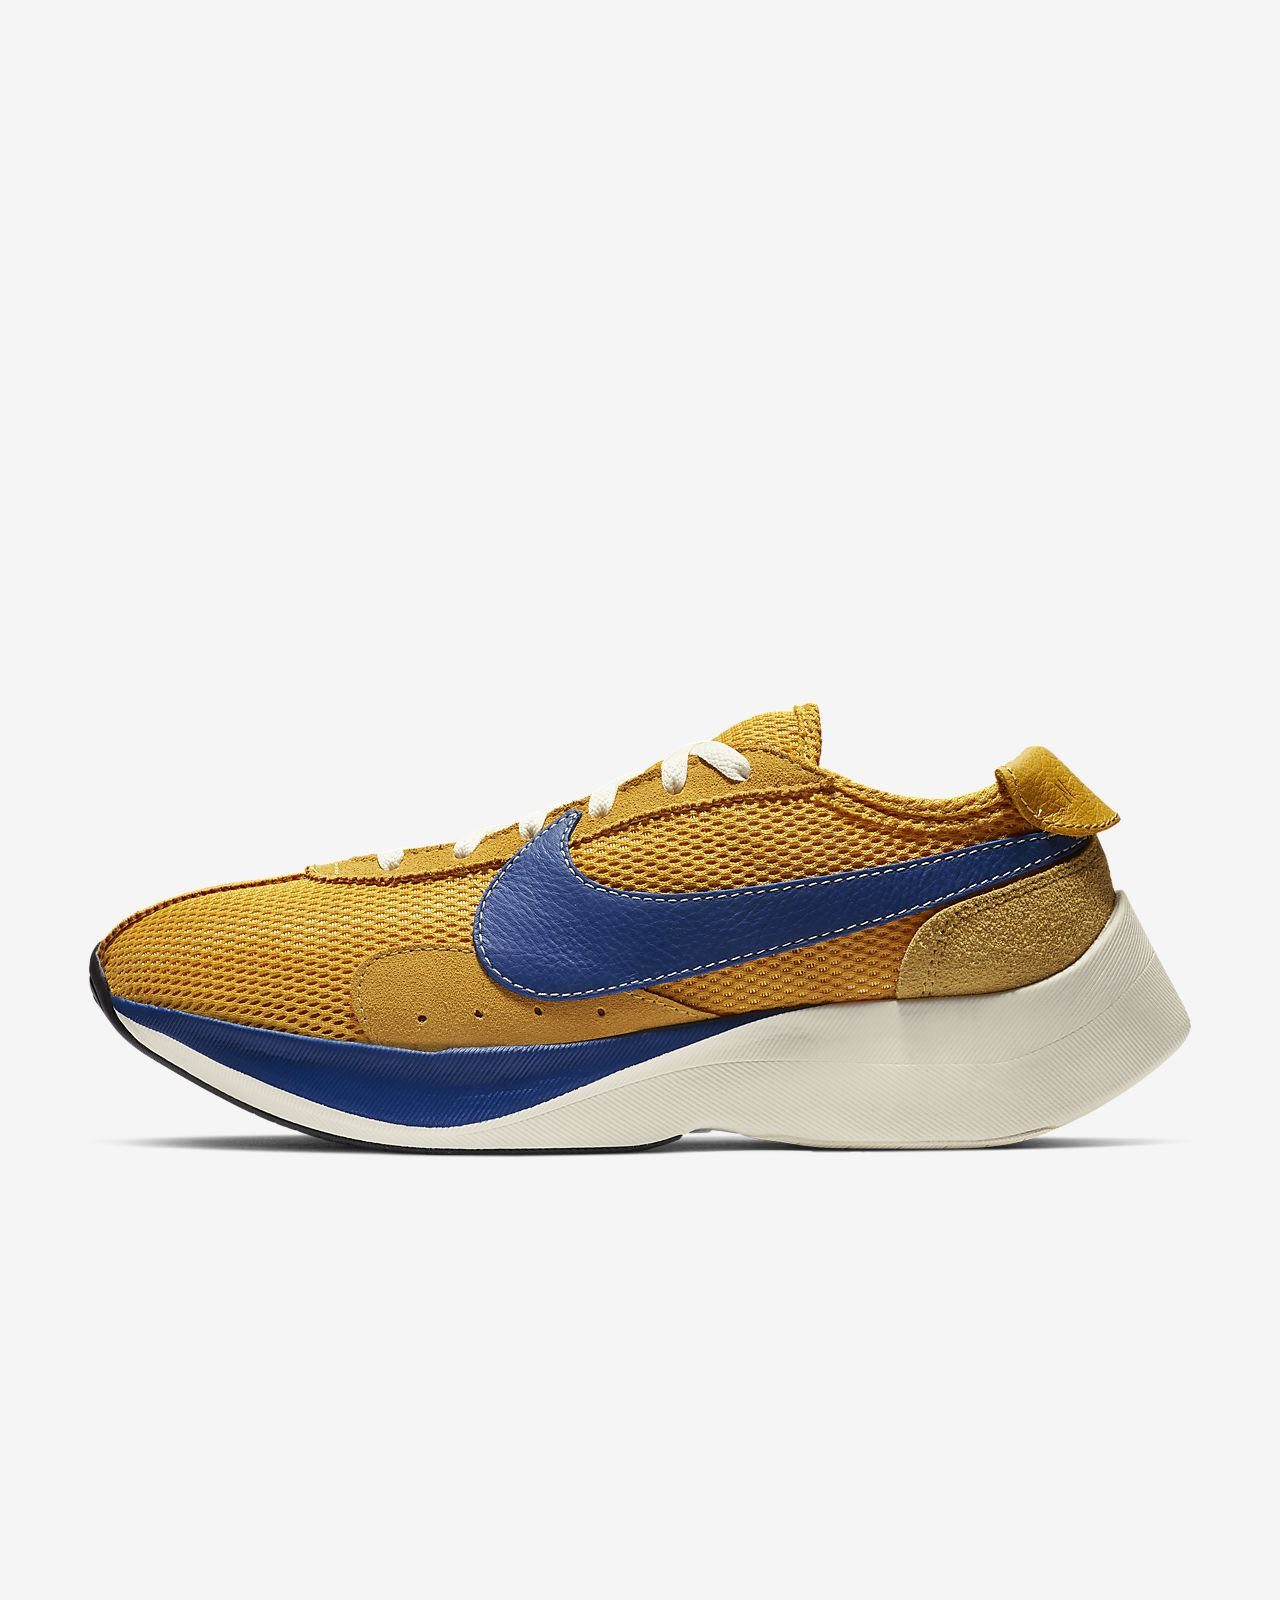 buy popular 57f82 02651 Chaussure Nike Moon Racer QS pour Homme. Nike.com FR